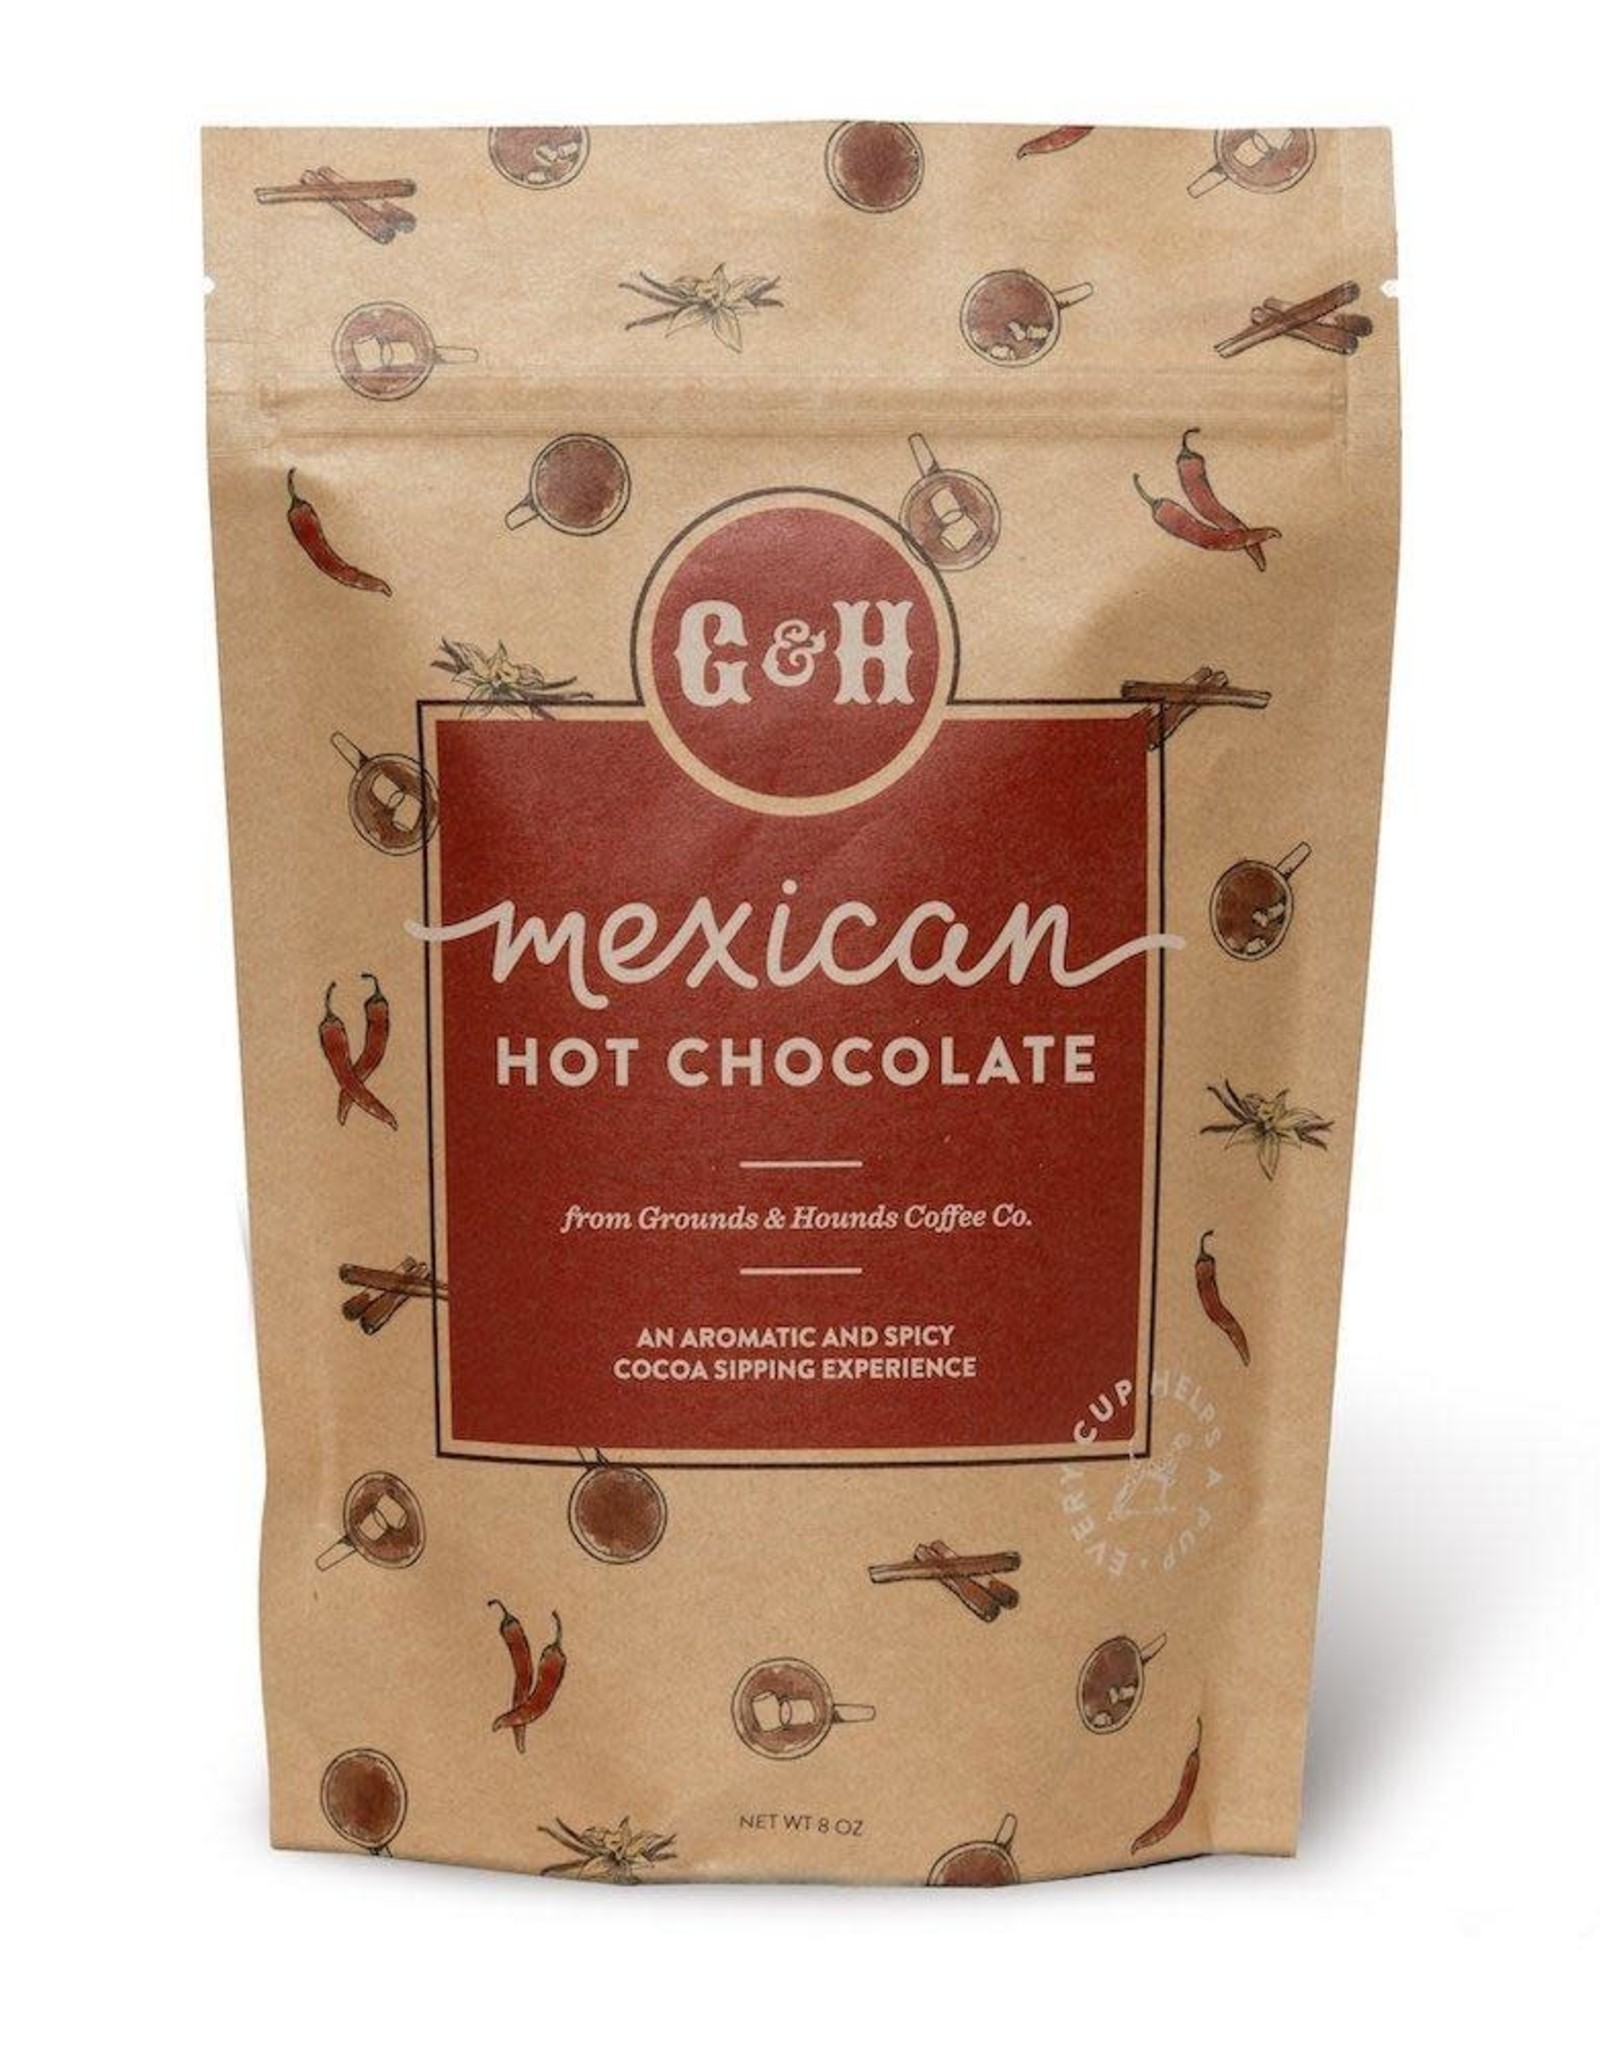 Grounds & Hounds Hot Chocolate Mexican